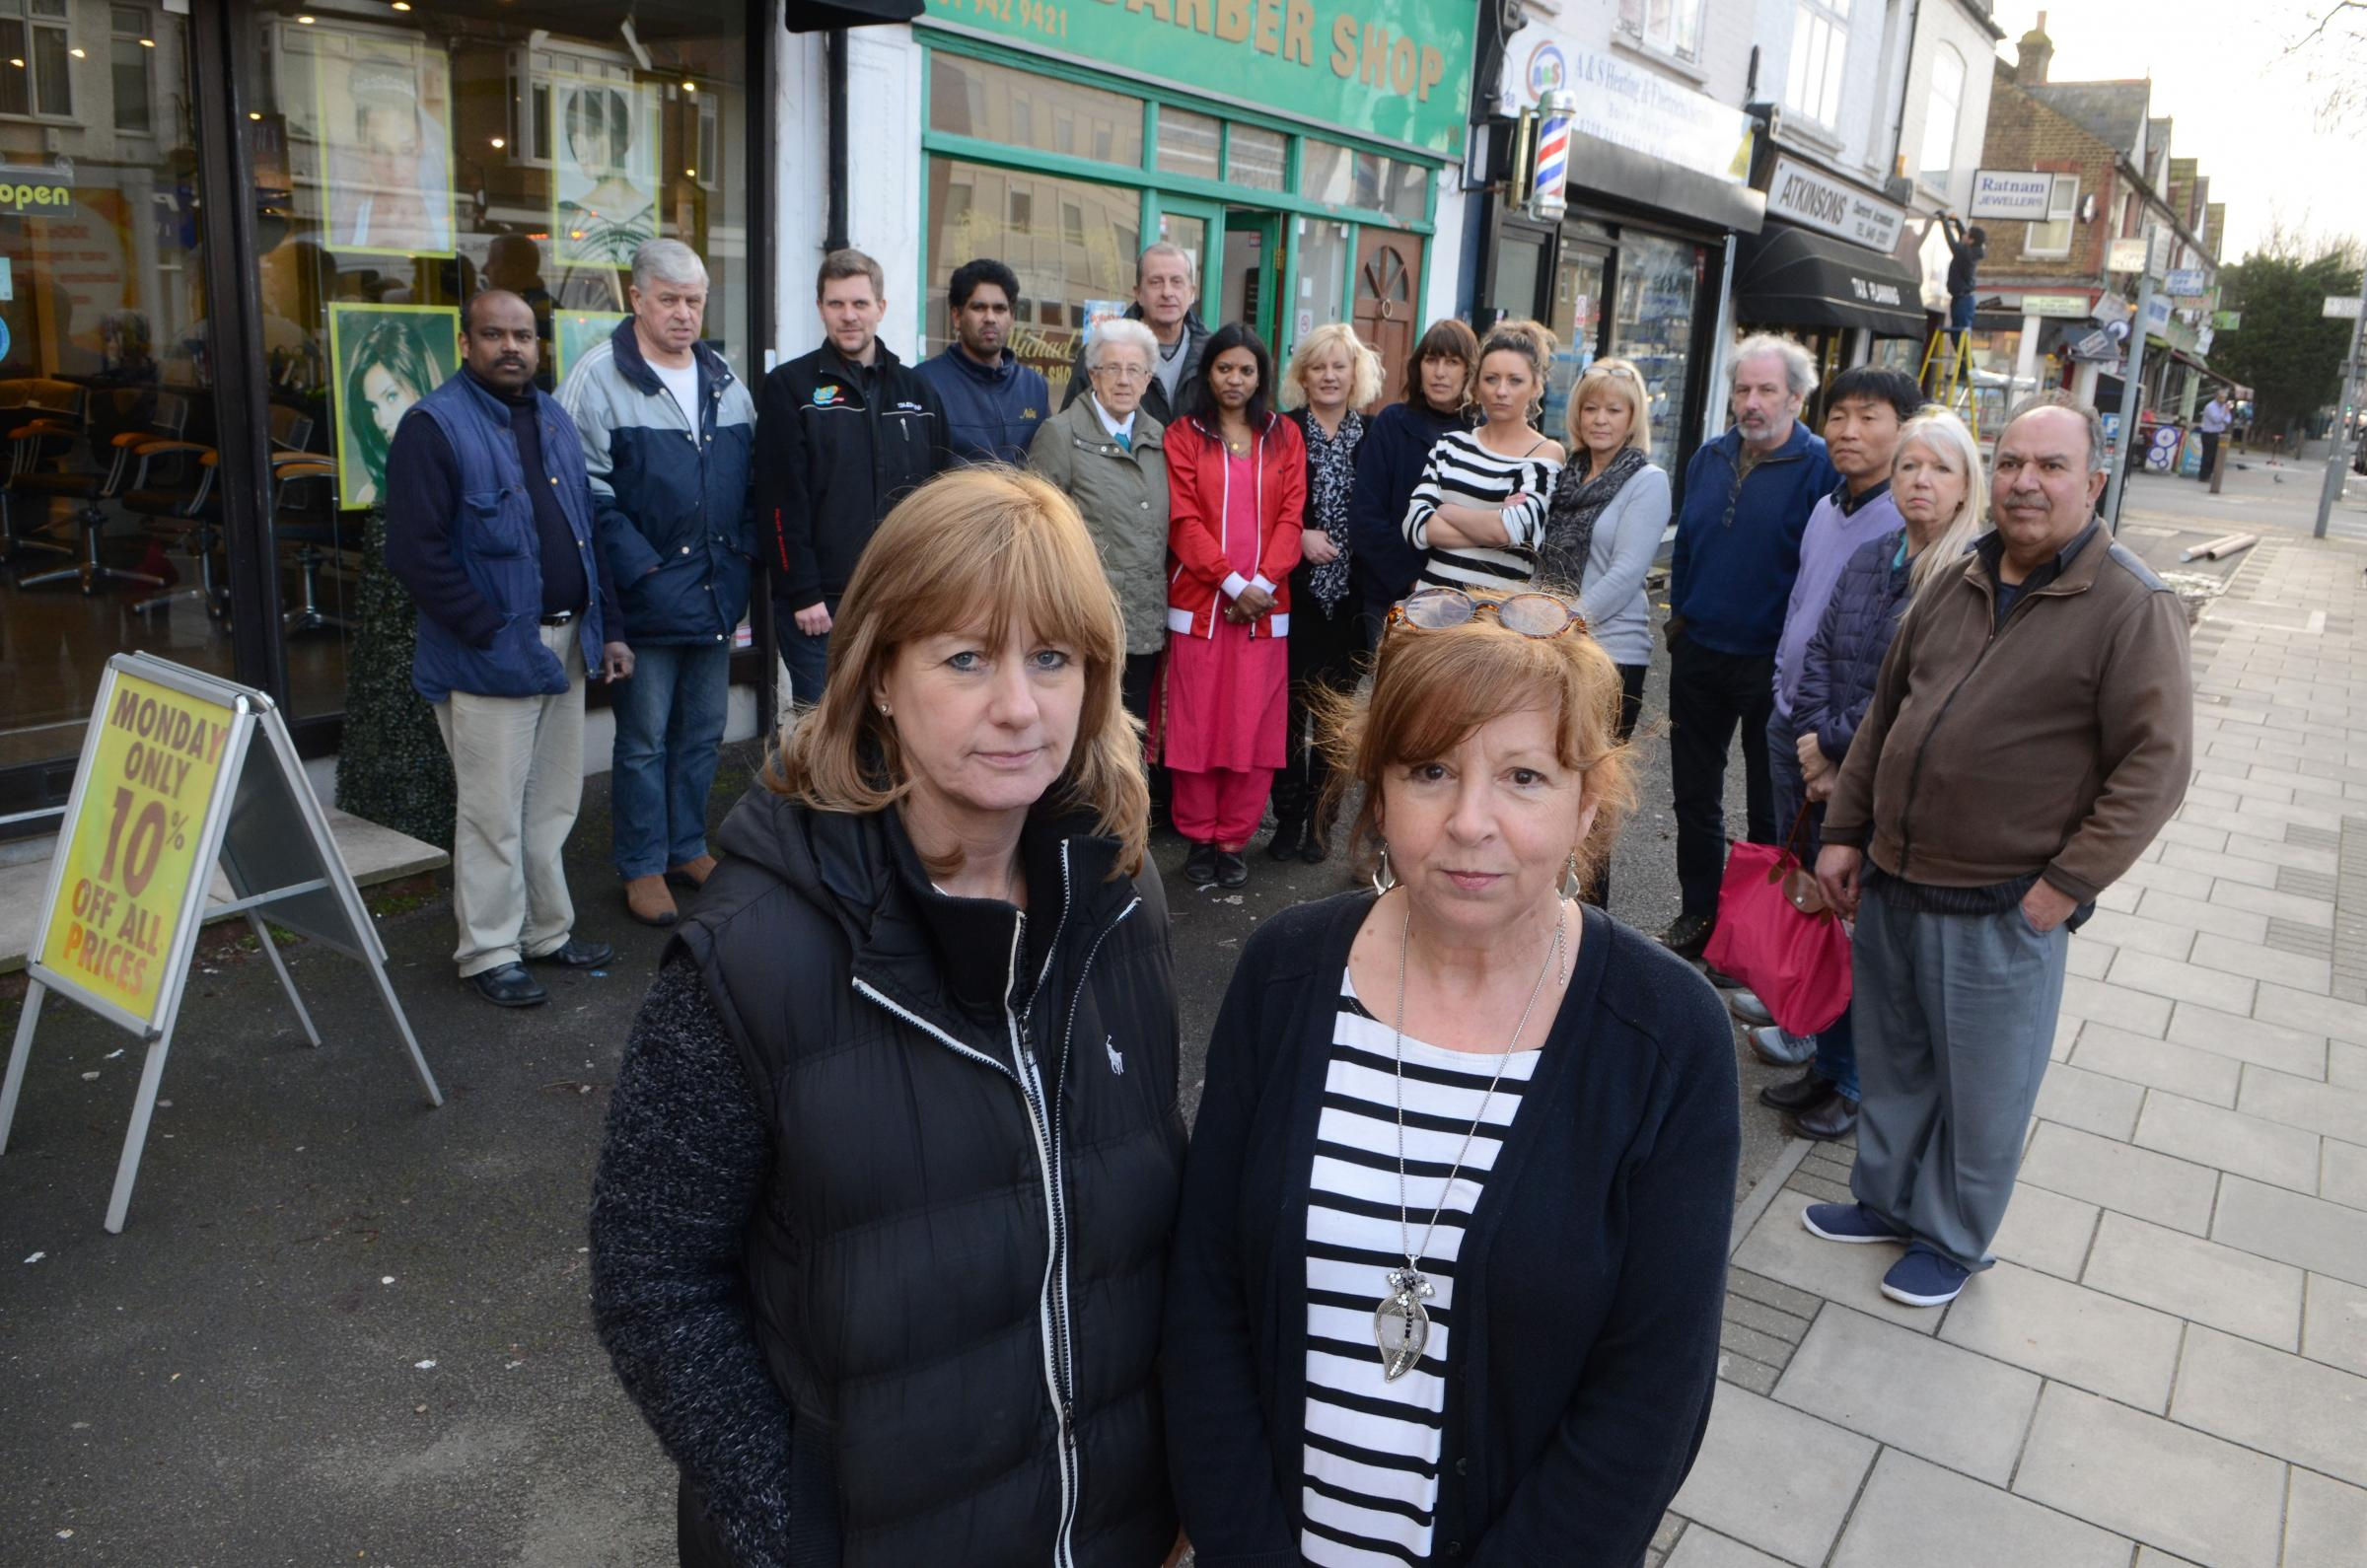 Shopkeepers and staff in Burlington Road are angry about the new parking scheme